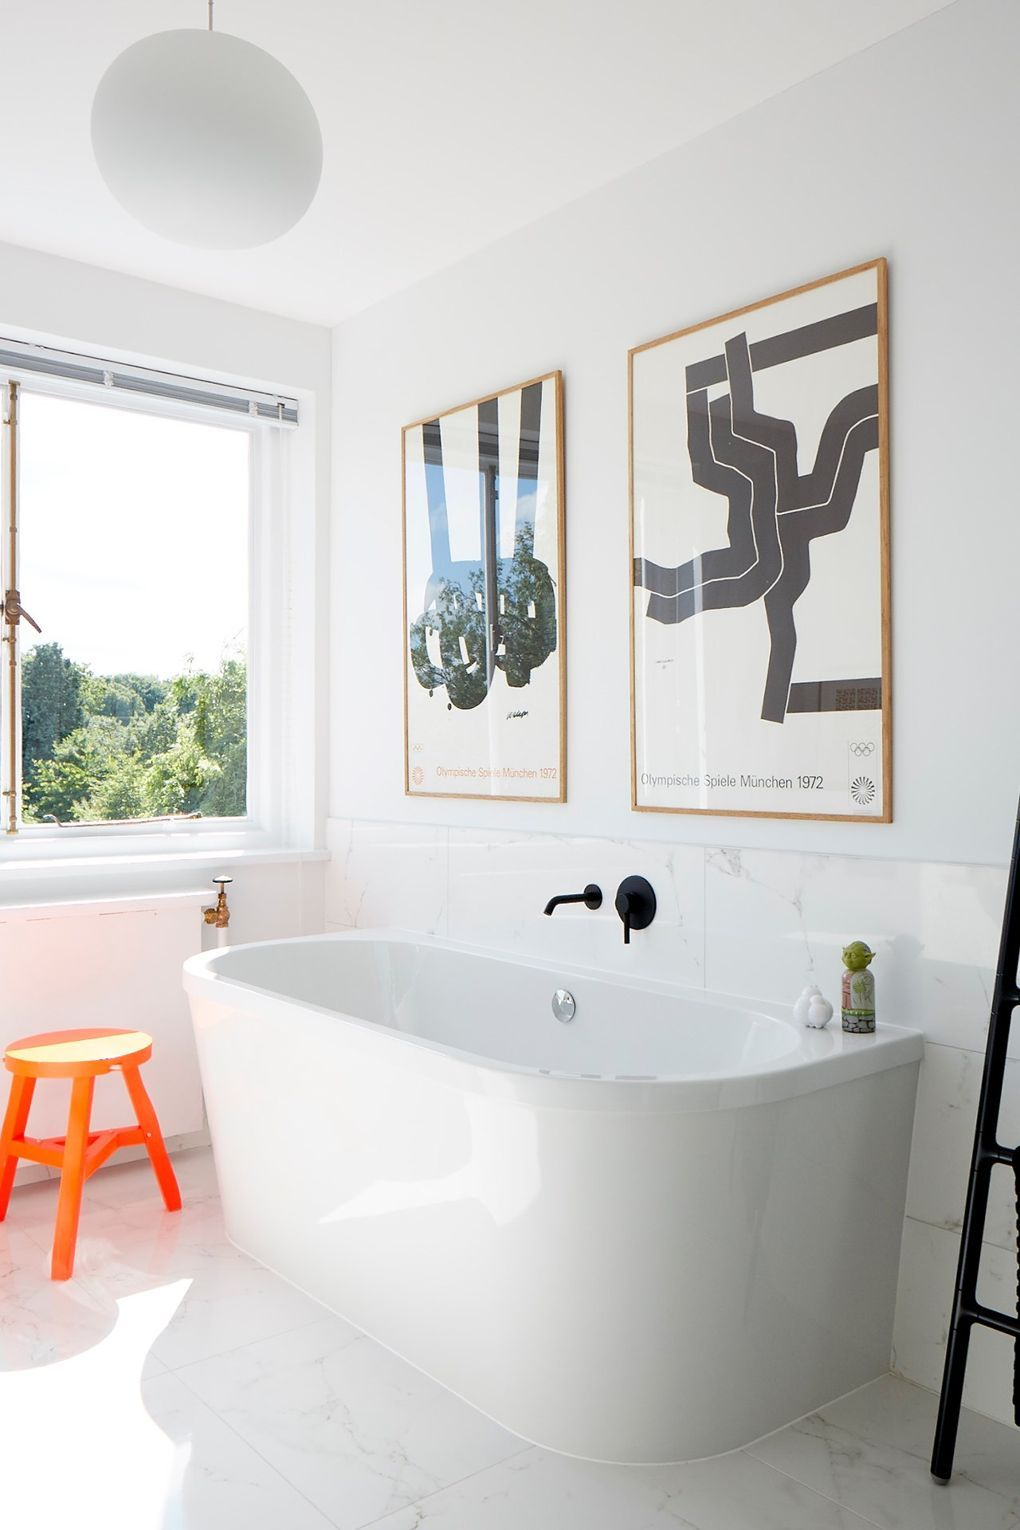 At Home: A modern mid-century house | Bathrooms & Powder Rooms ...